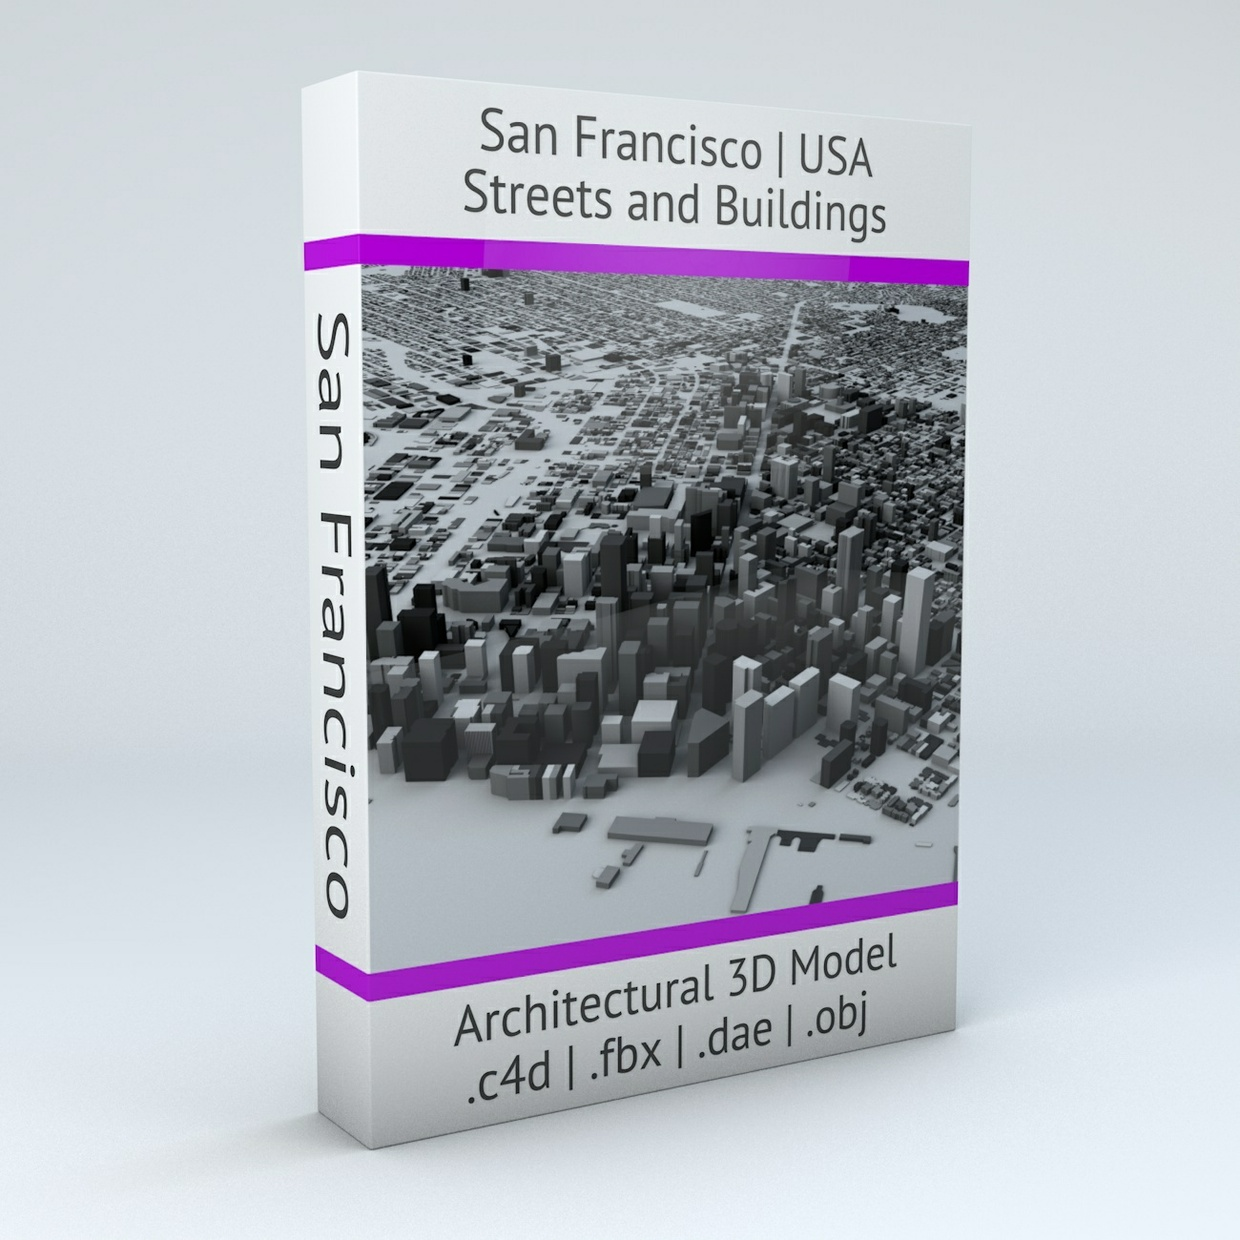 San Francisco Streets and Buildings Architectural 3D Model